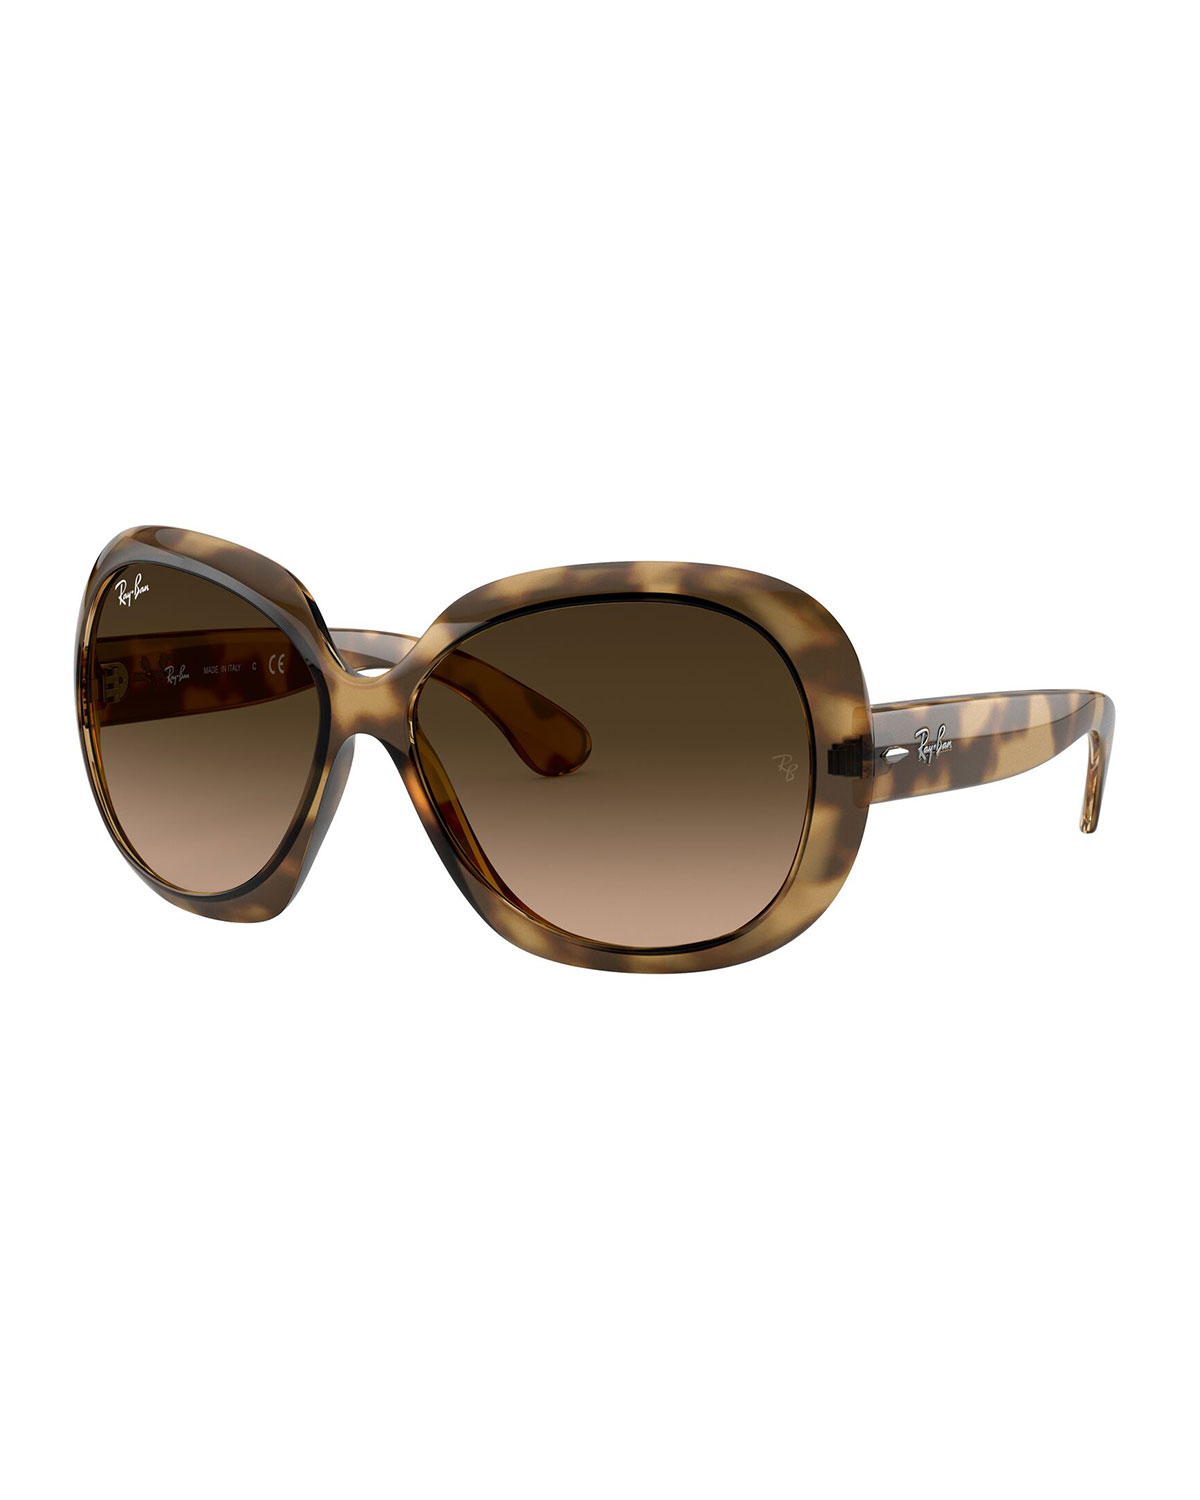 Ray Ban JACKIE OHH II NYLON BUTTERFLY SUNGLASSES